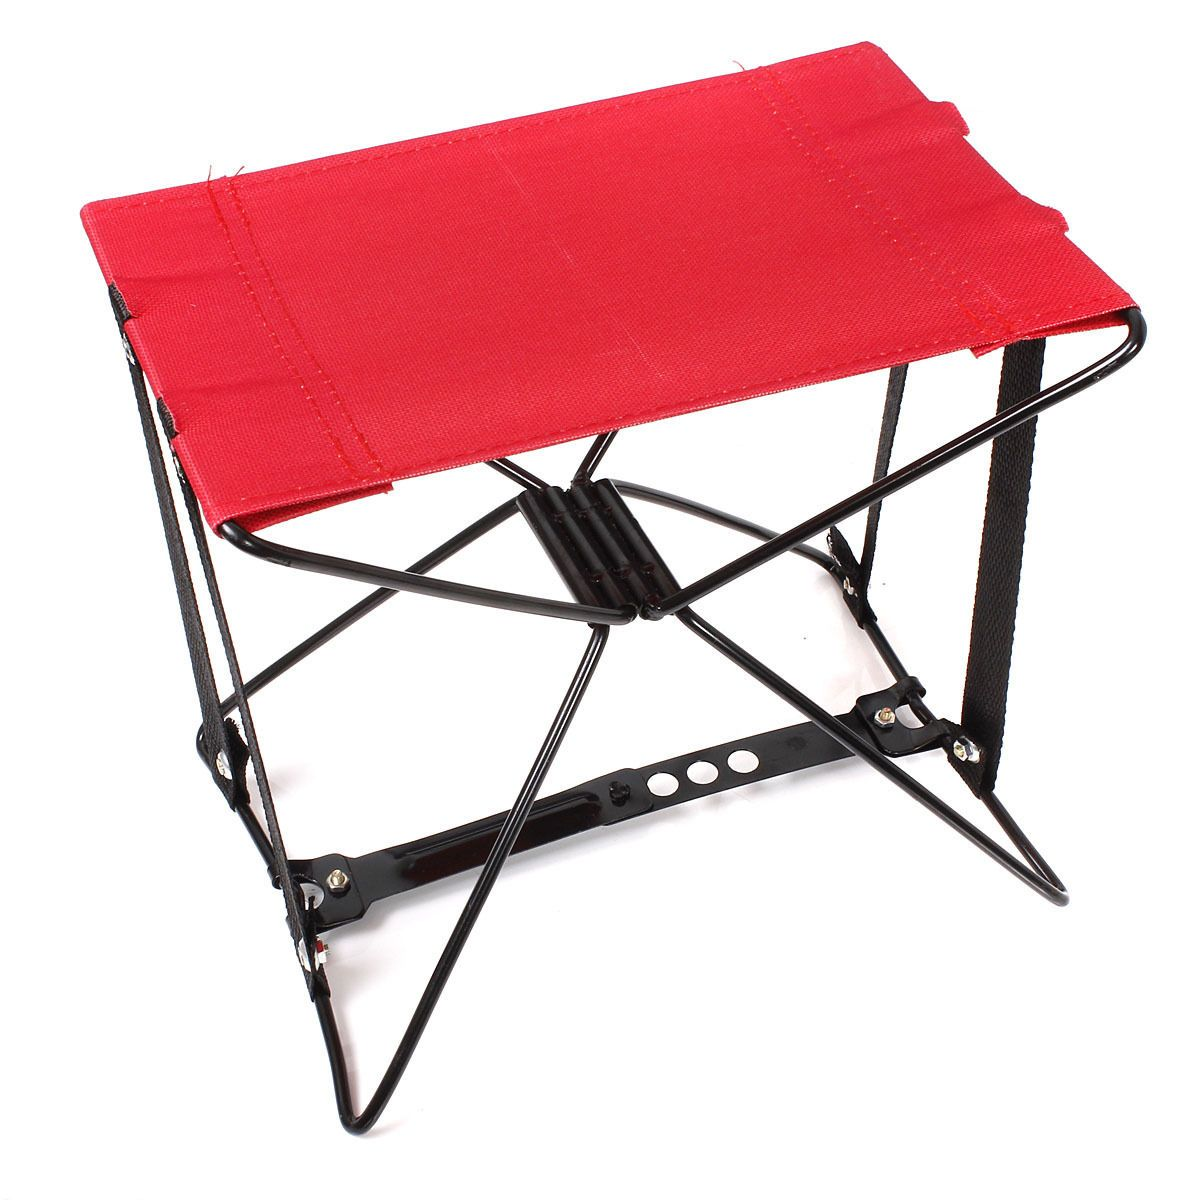 Portable U0026 Pocket Folding Camping Beach Fishing Chair Foldable Seat Stool  Red